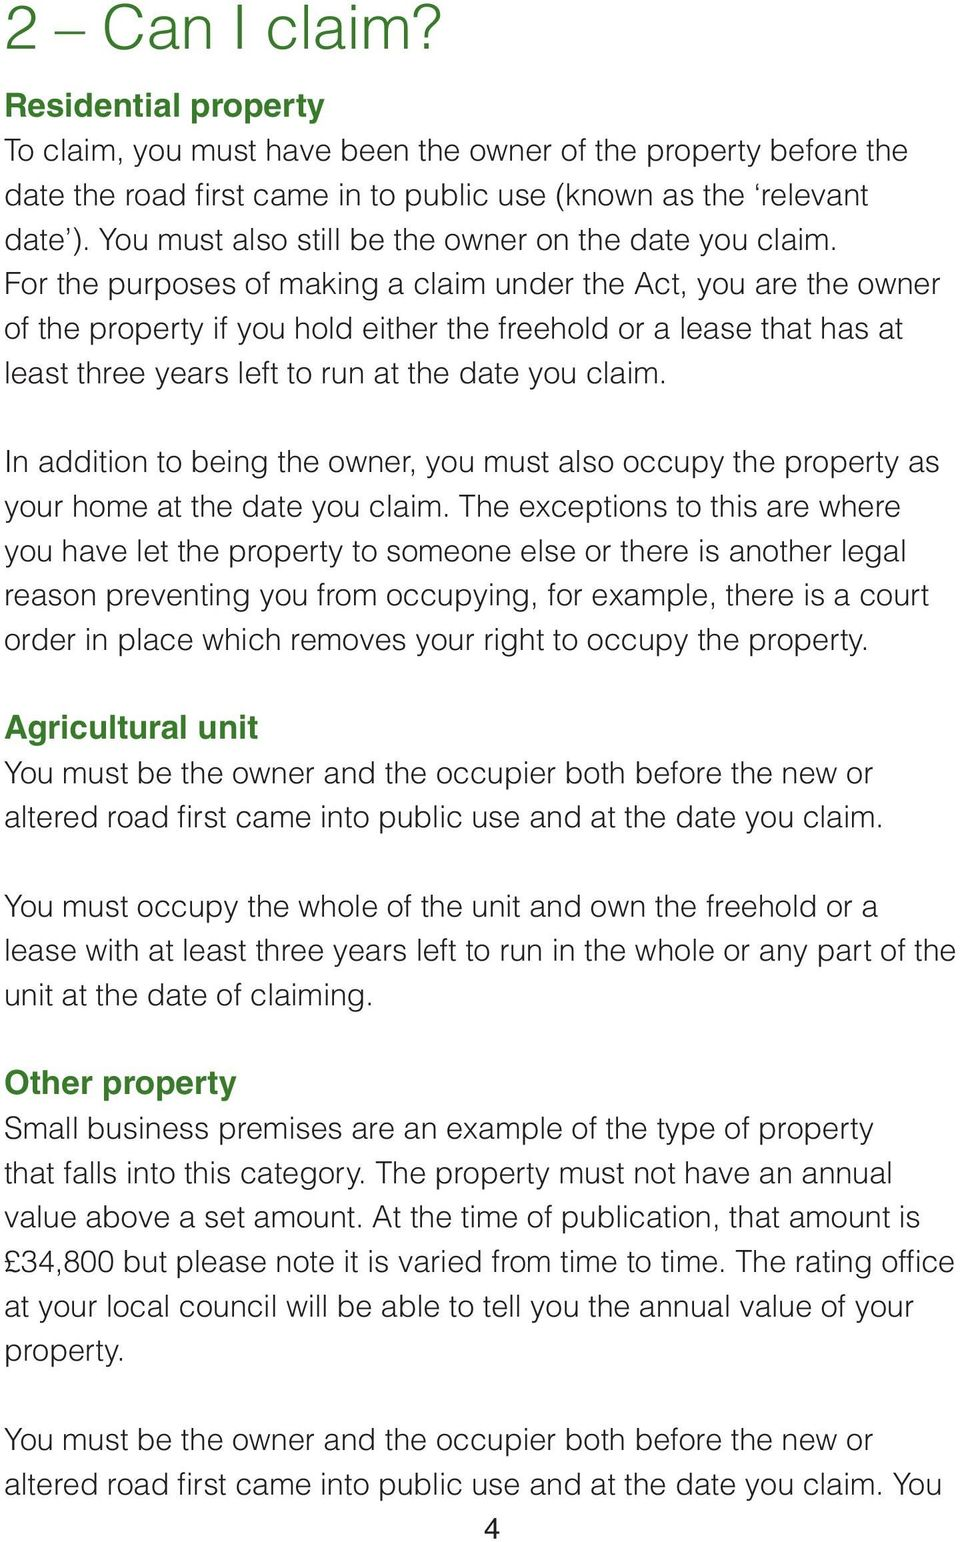 For the purposes of making a claim under the Act, you are the owner of the property if you hold either the freehold or a lease that has at least three years left to run at the date you claim.